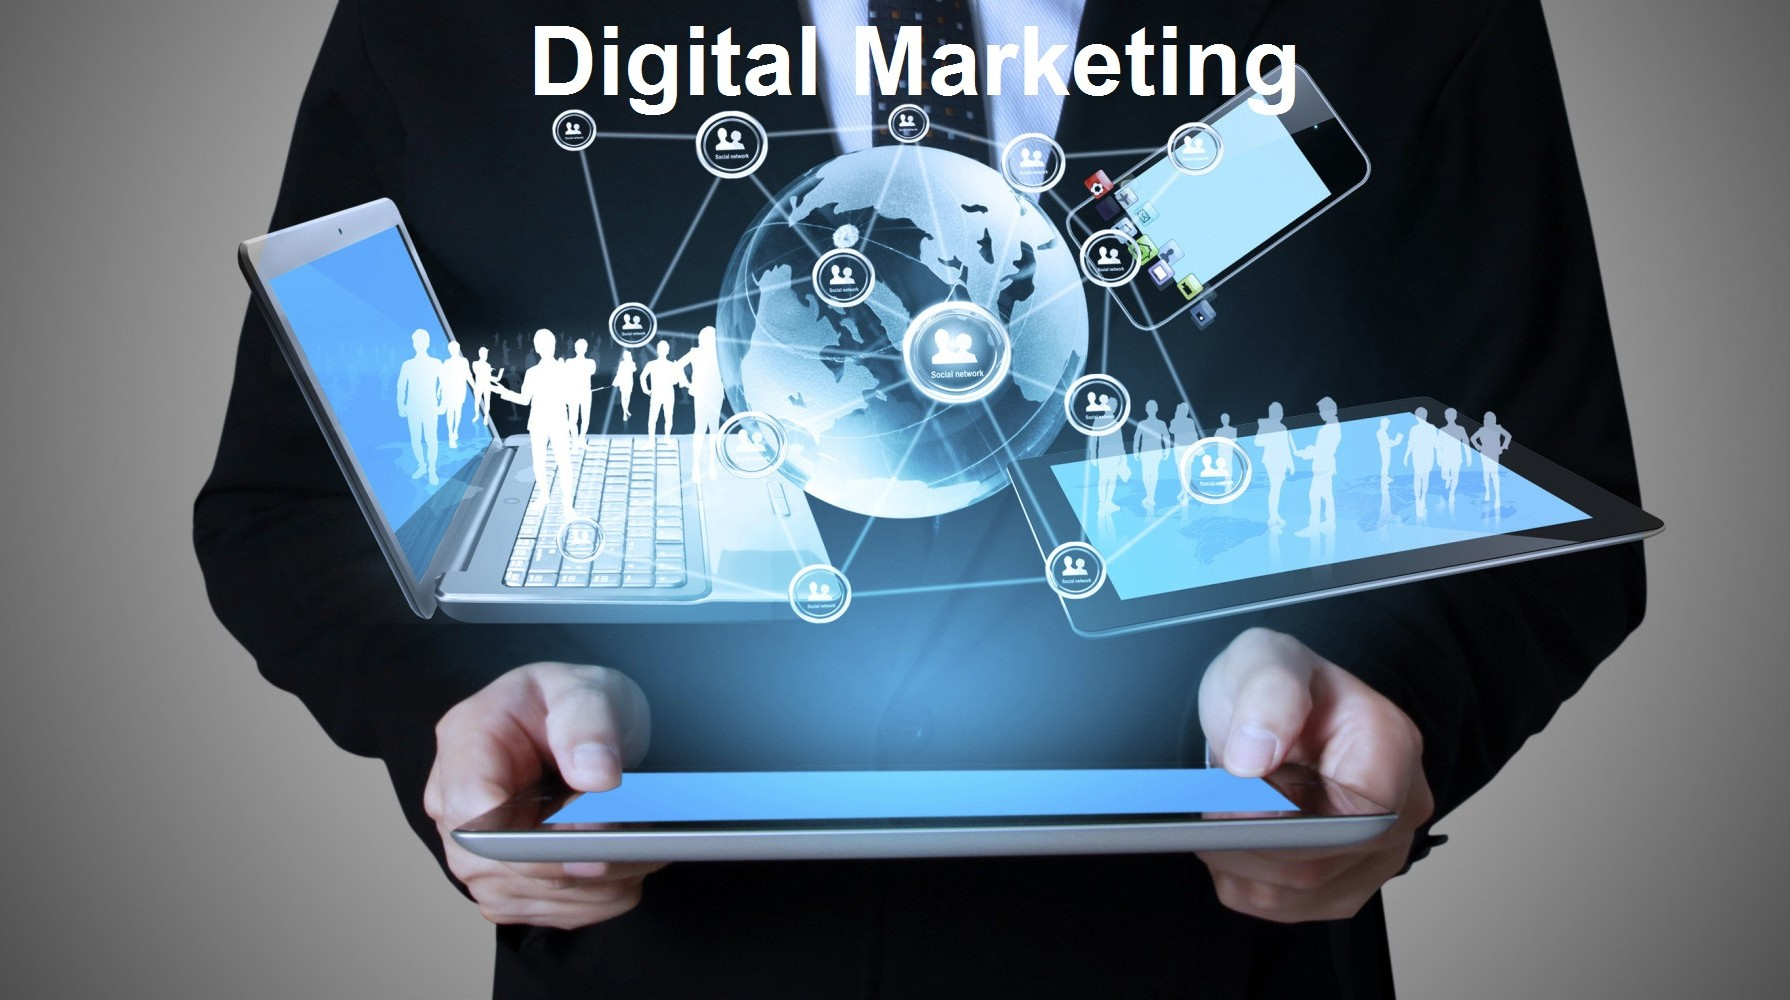 What are Digital Marketing Consultants truly missing when it comes to helping businesses large or small?